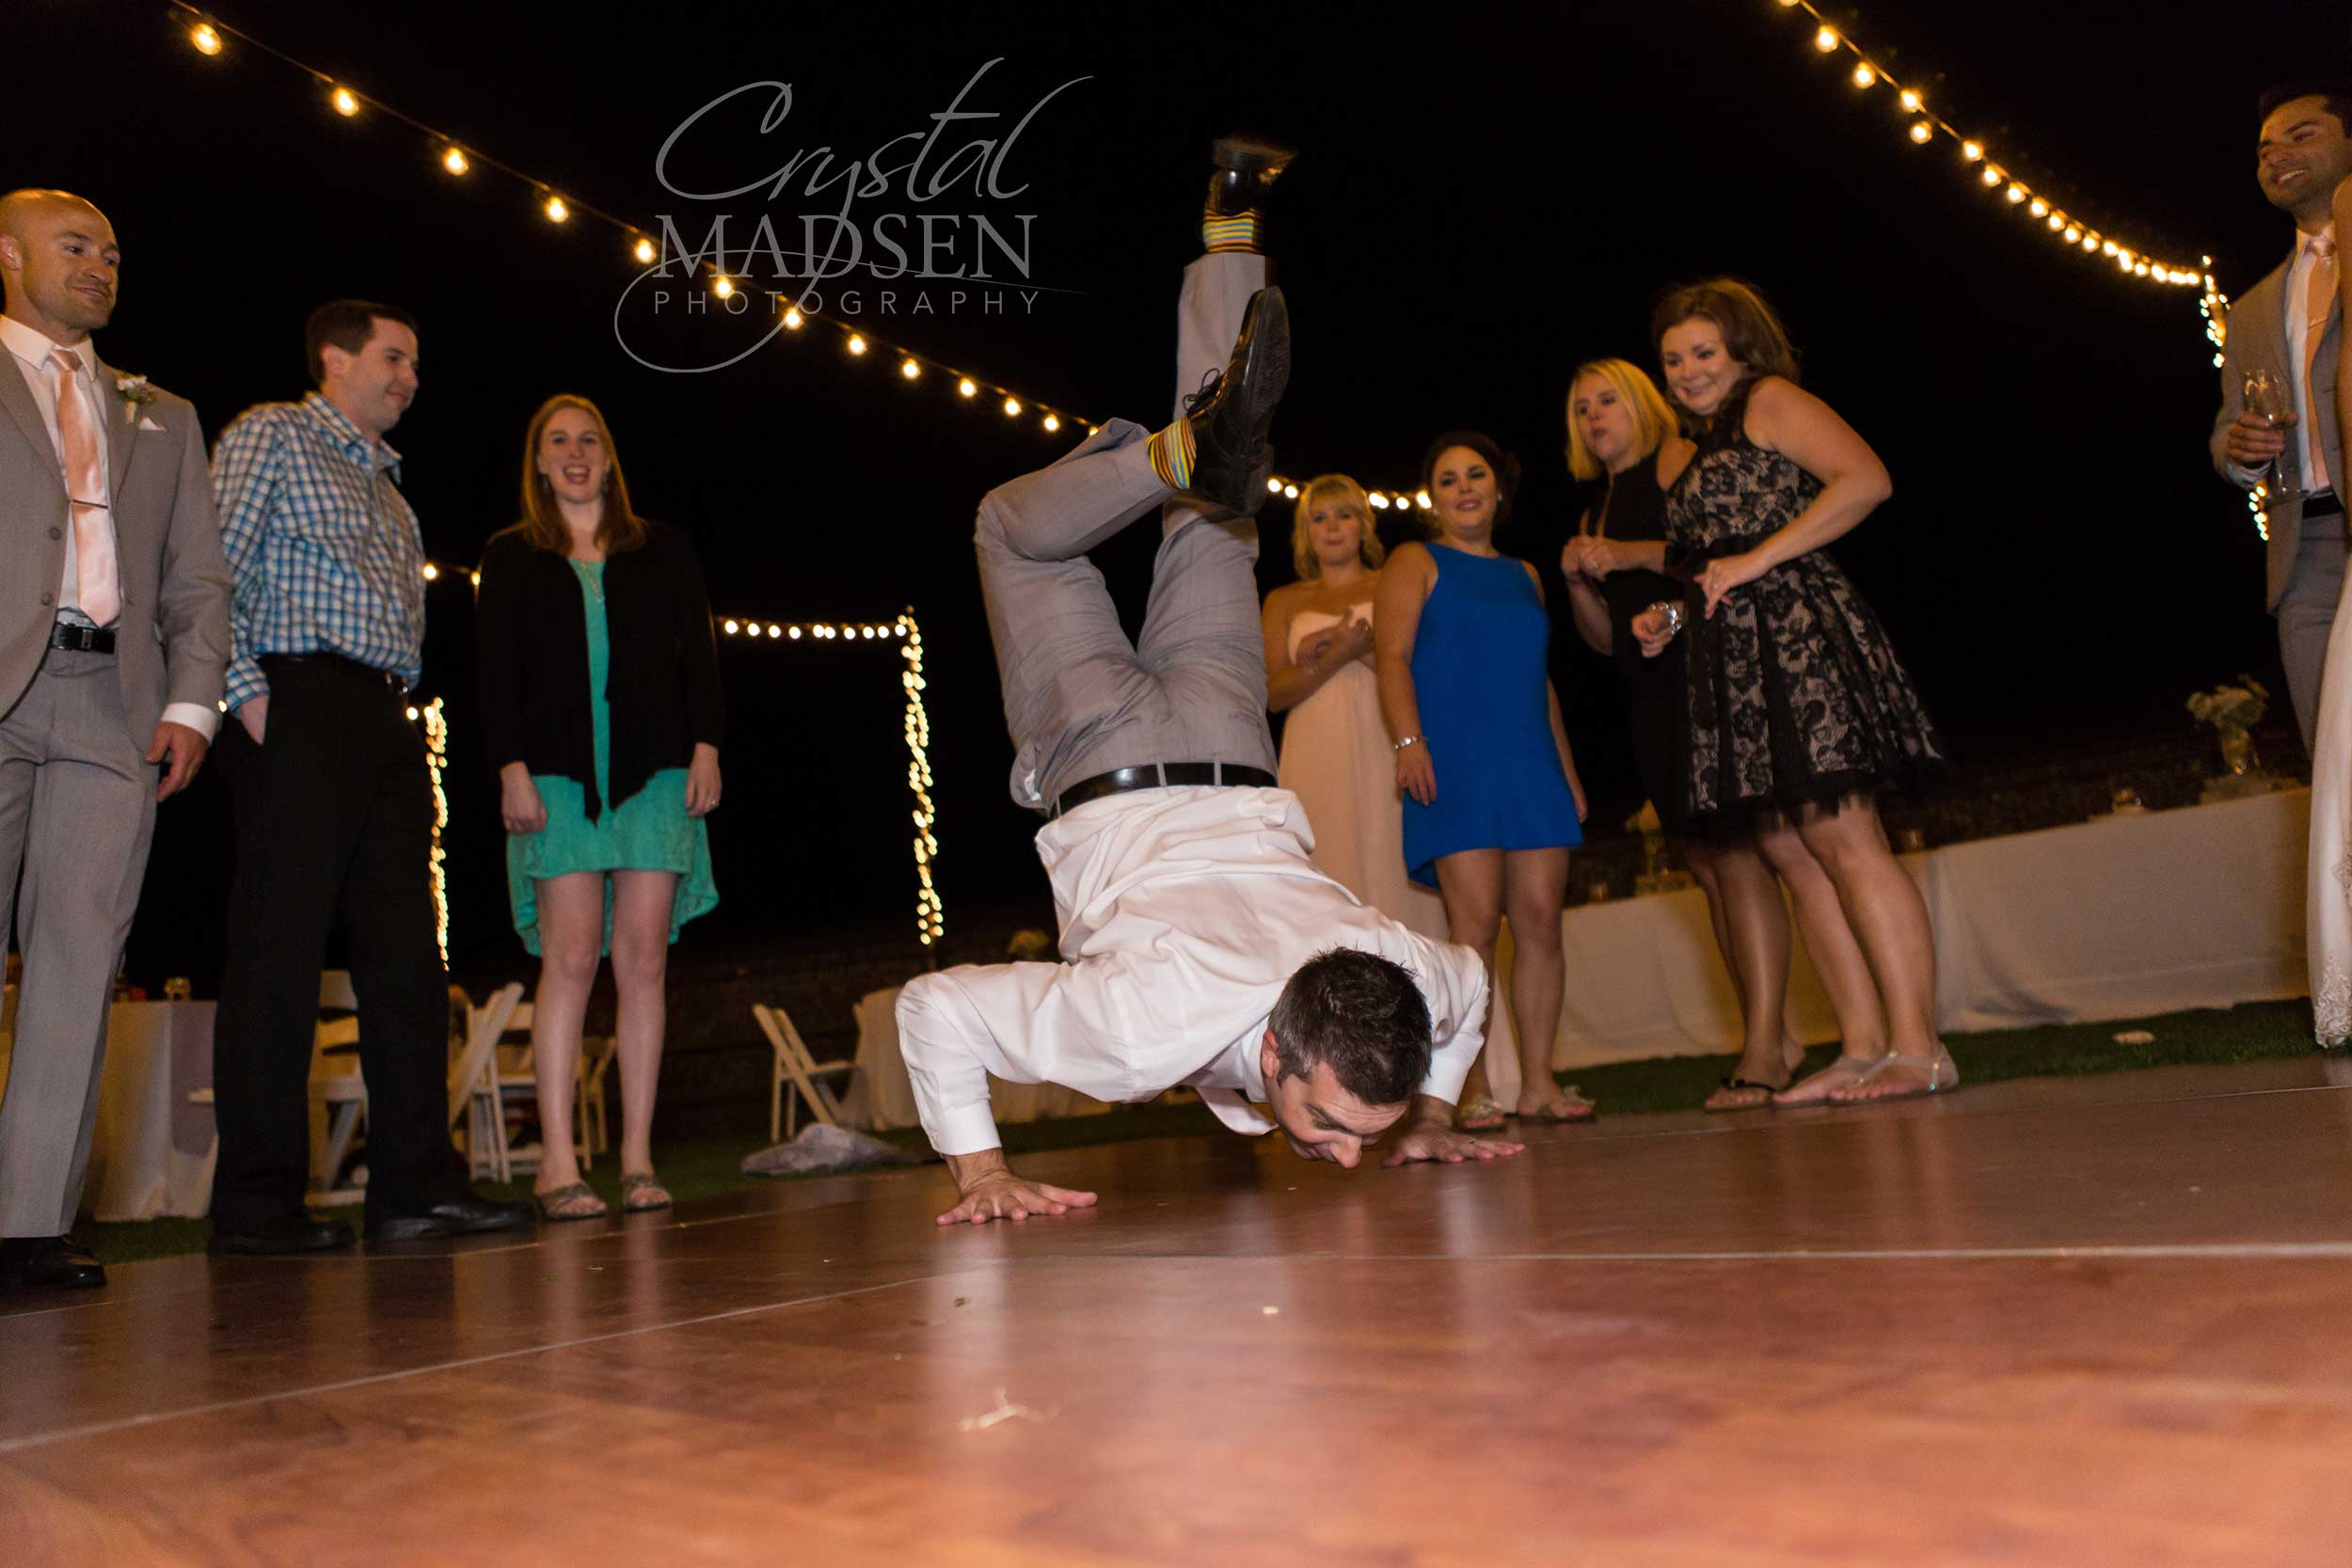 Wedding Reception Fun Photos